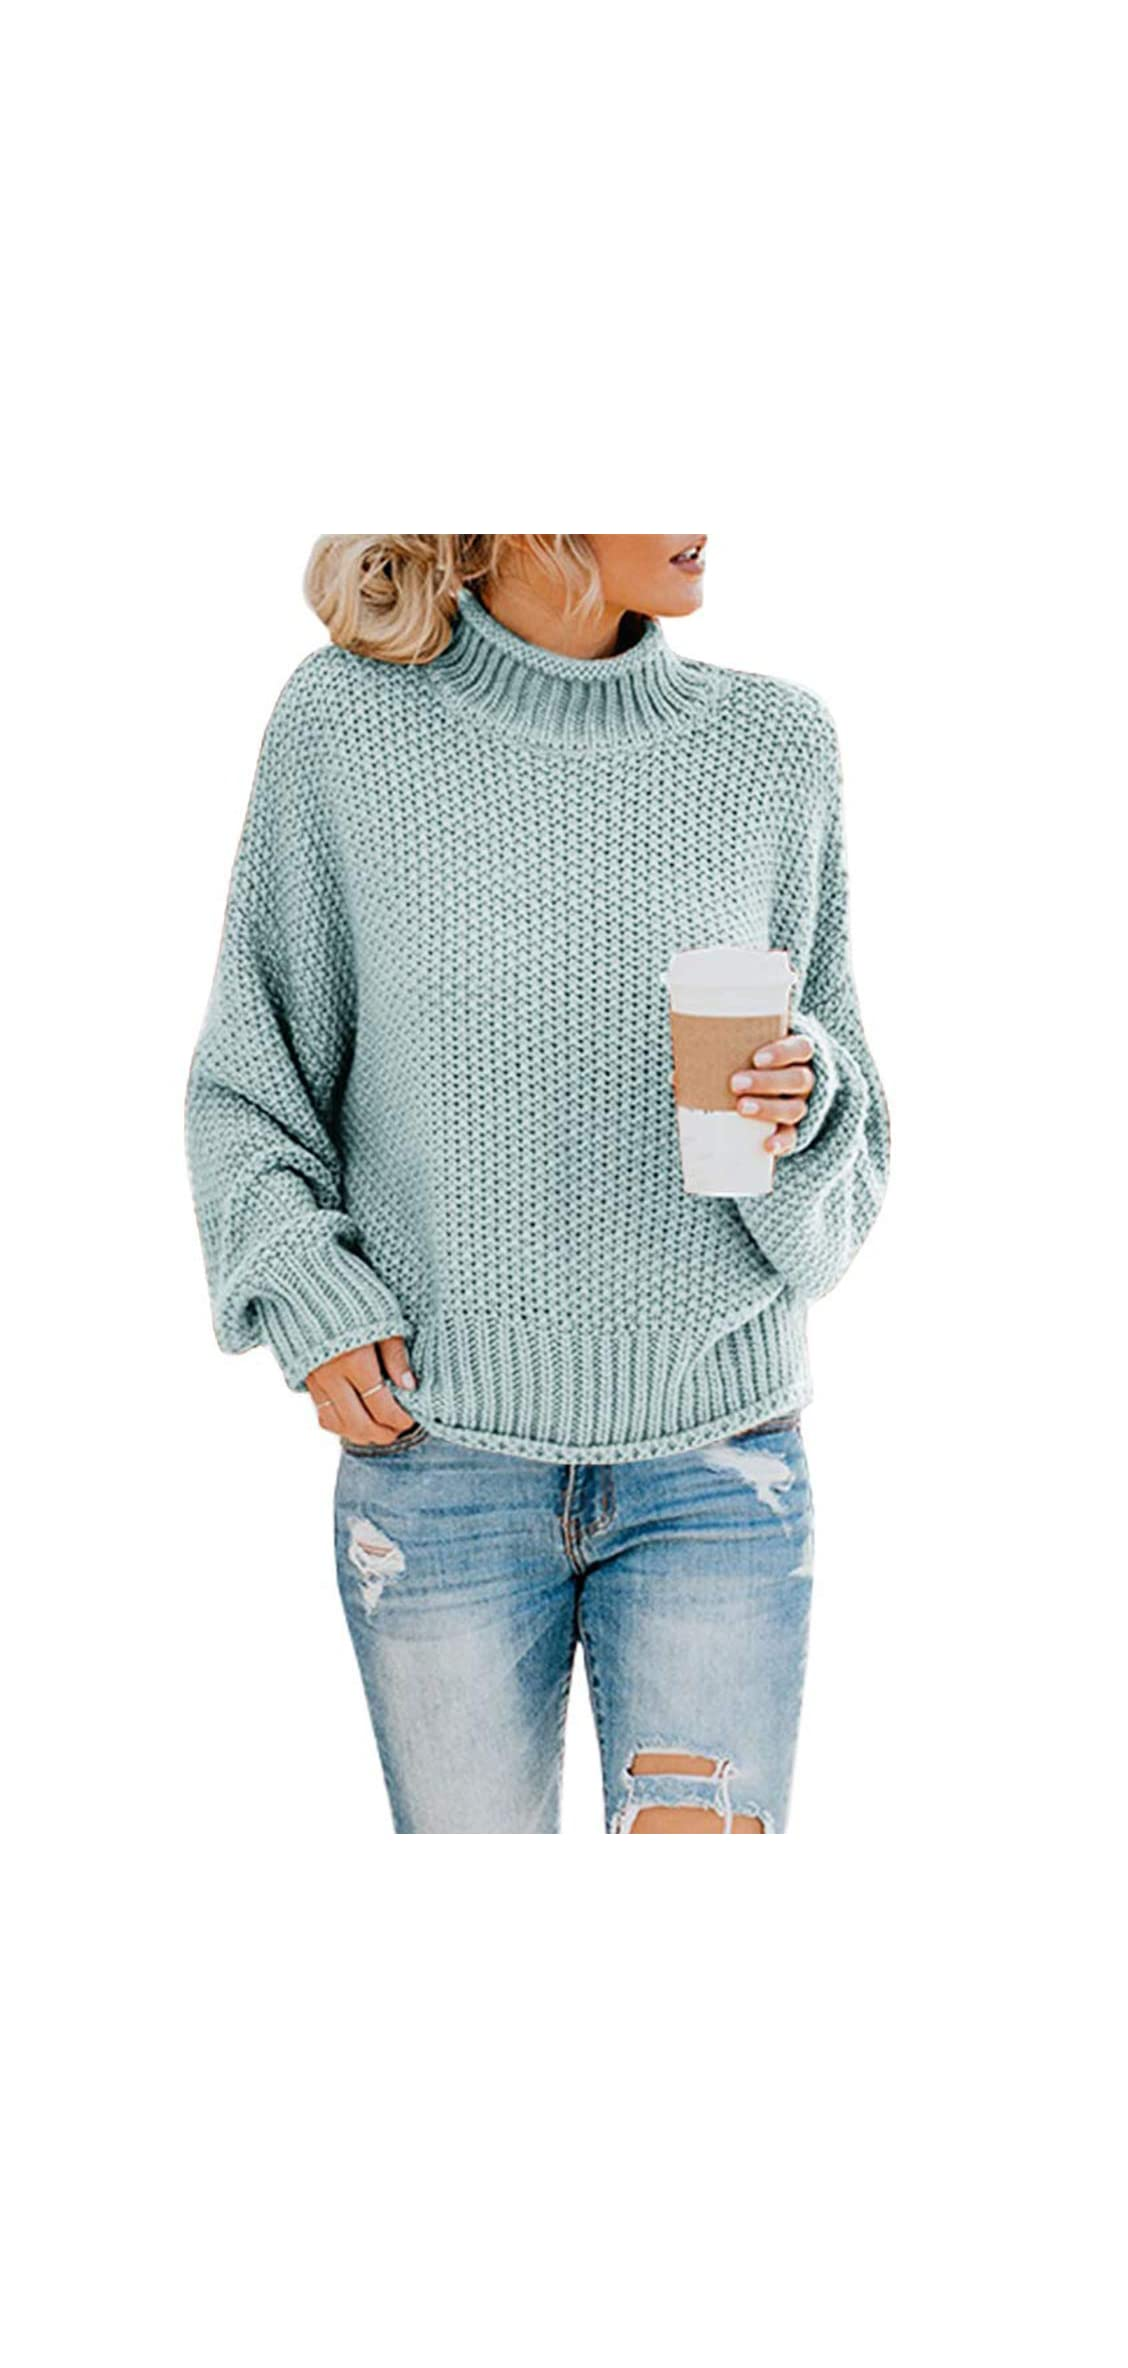 Womens Turtleneck Sweater Casual Cable Knitting Sweater